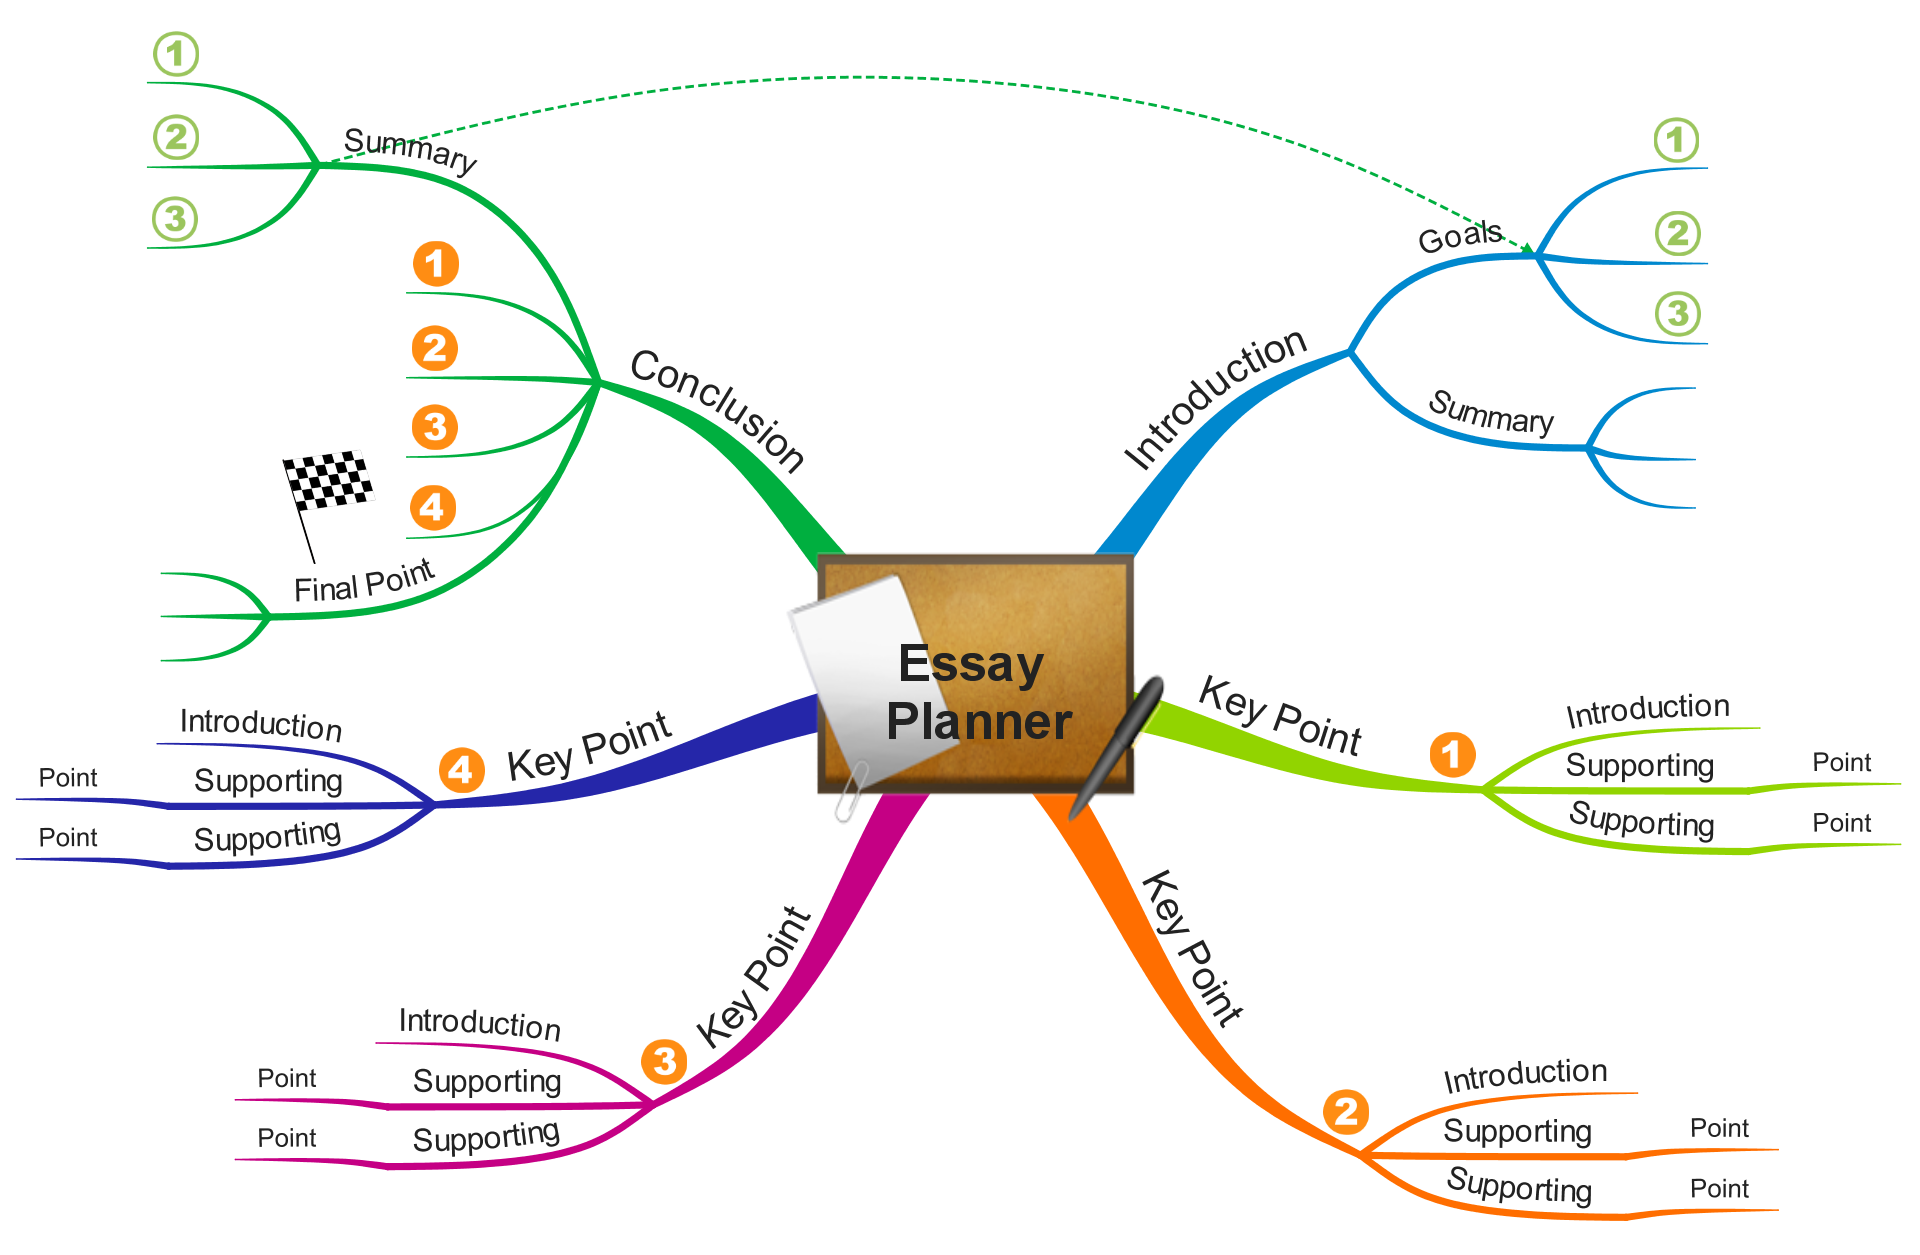 essay mapping tools how to plan an essay using a mind map steps pictures tbe essay map how to plan an essay using a mind map steps pictures tbe essay map